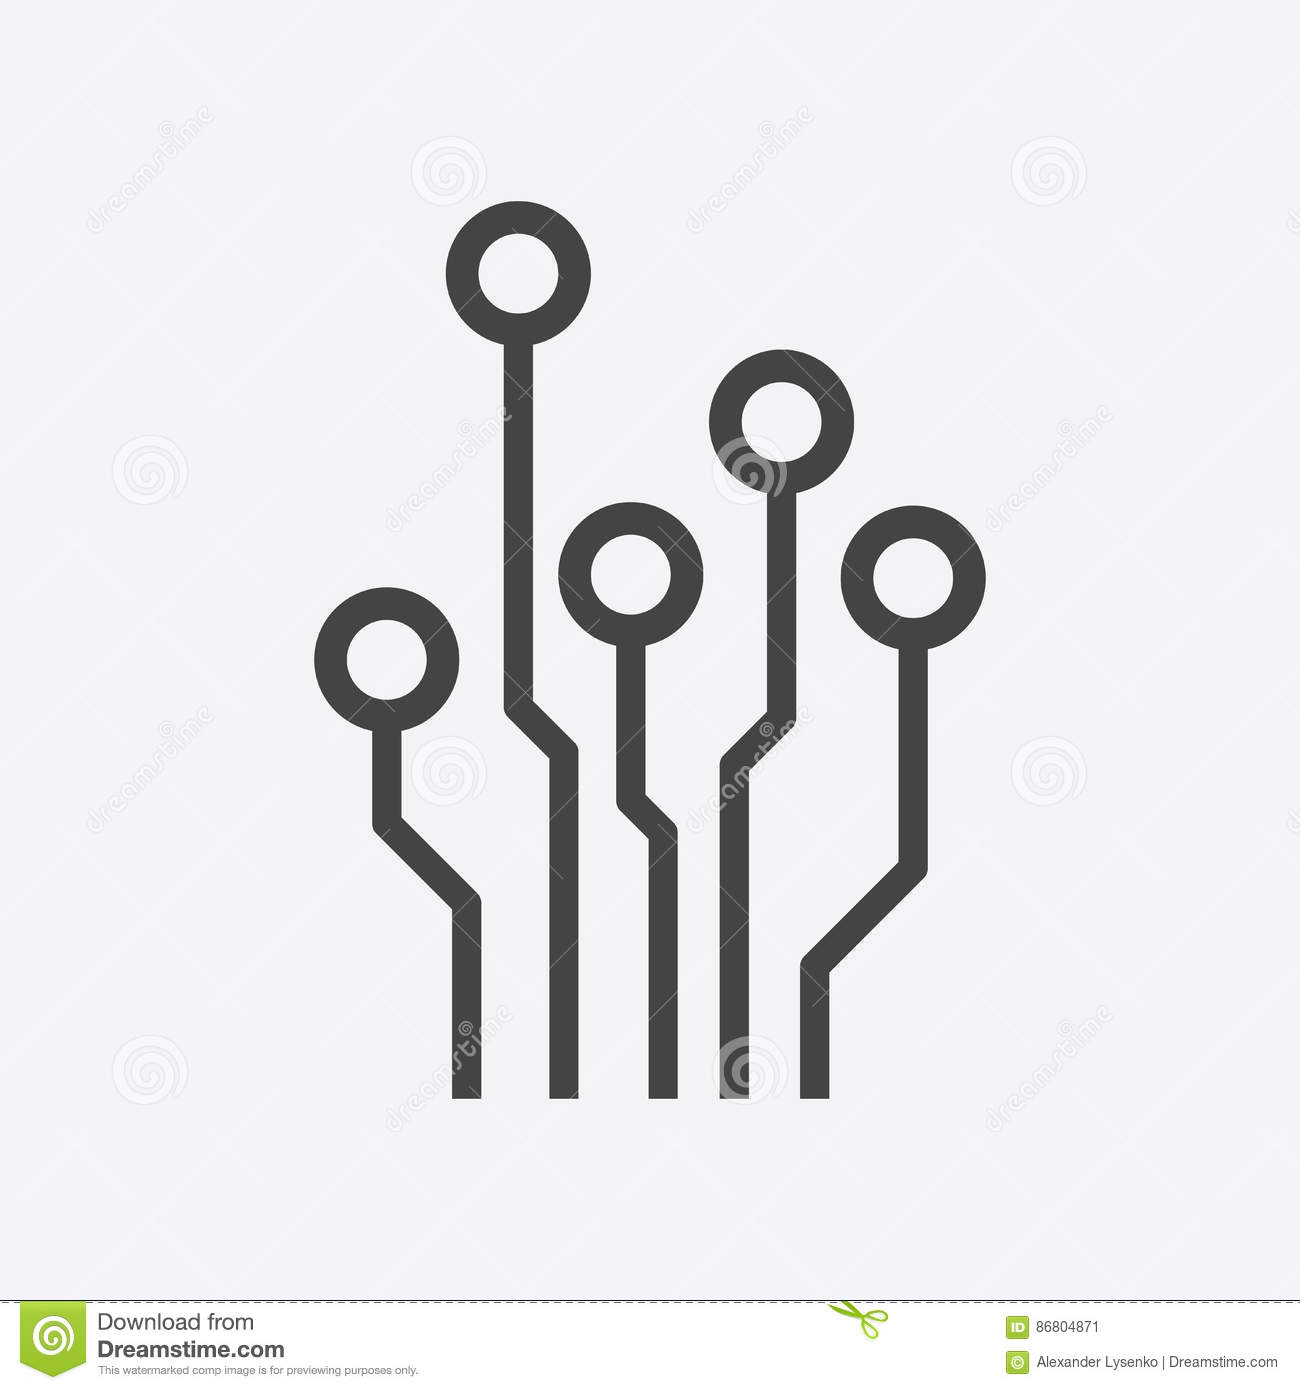 Snap Circuit Board Stock Vector Illustration Of Electronic Clipart Computer K3811151 Search Clip Art Icon Image Electronics 86804871